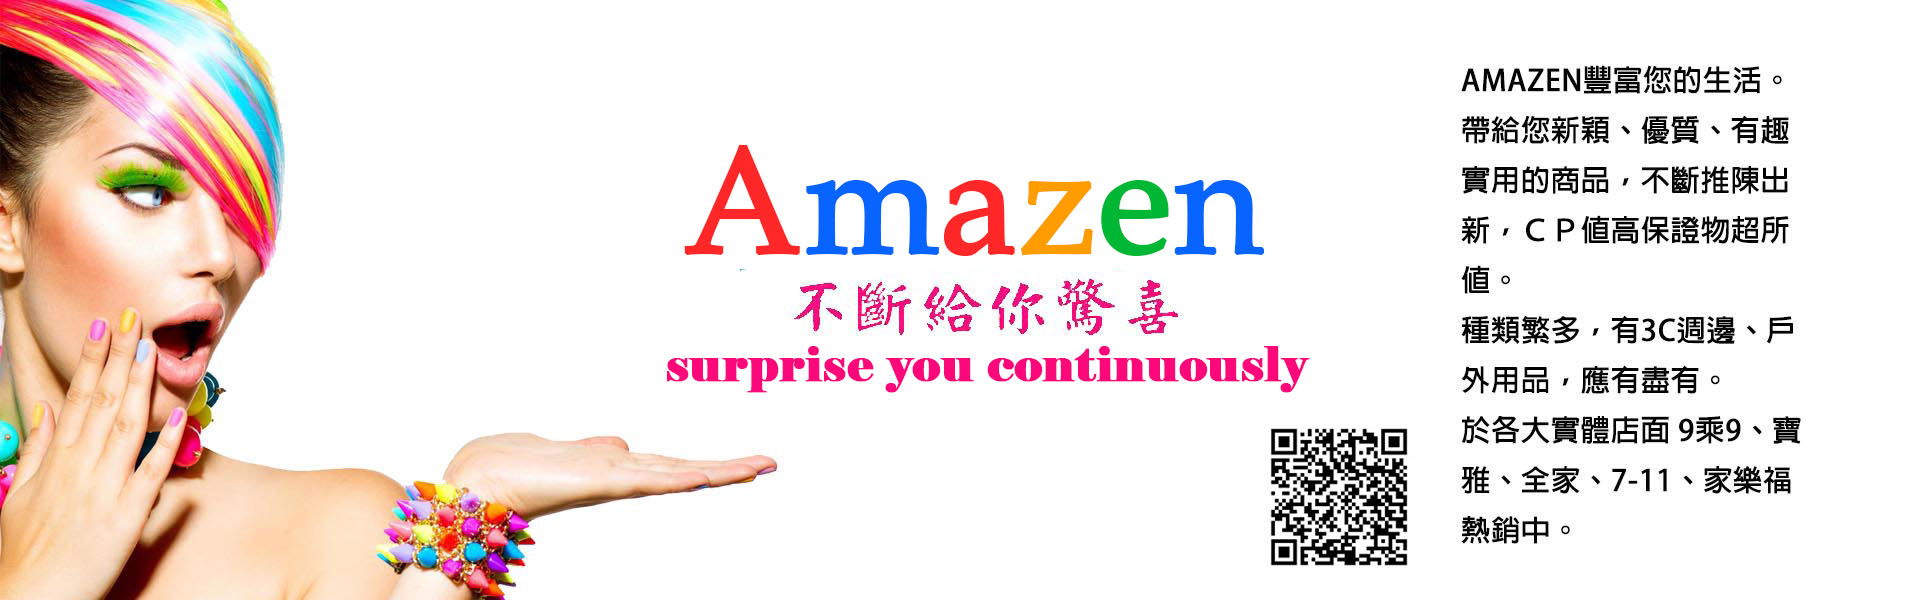 AMAZEN make surprise you continuously